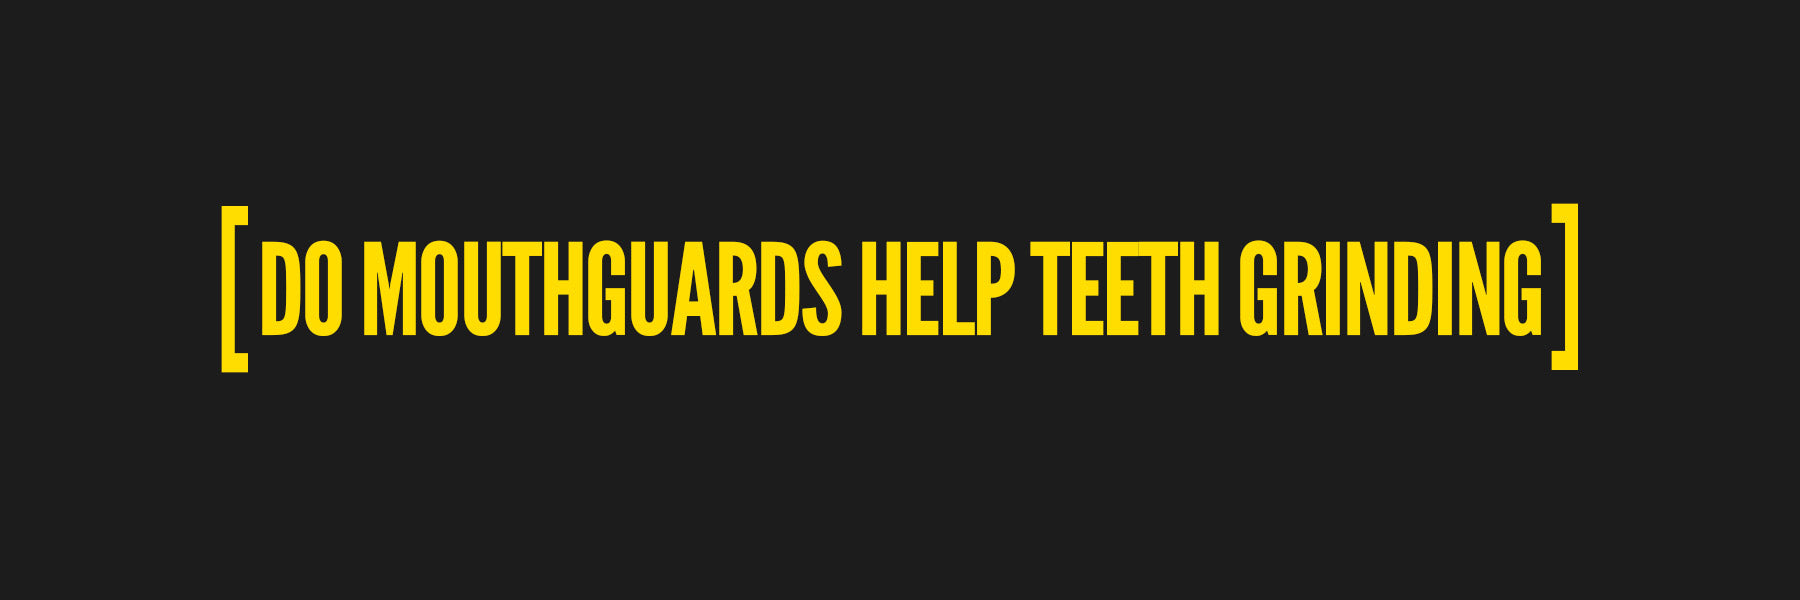 Do mouthguards help with teeth grinding?